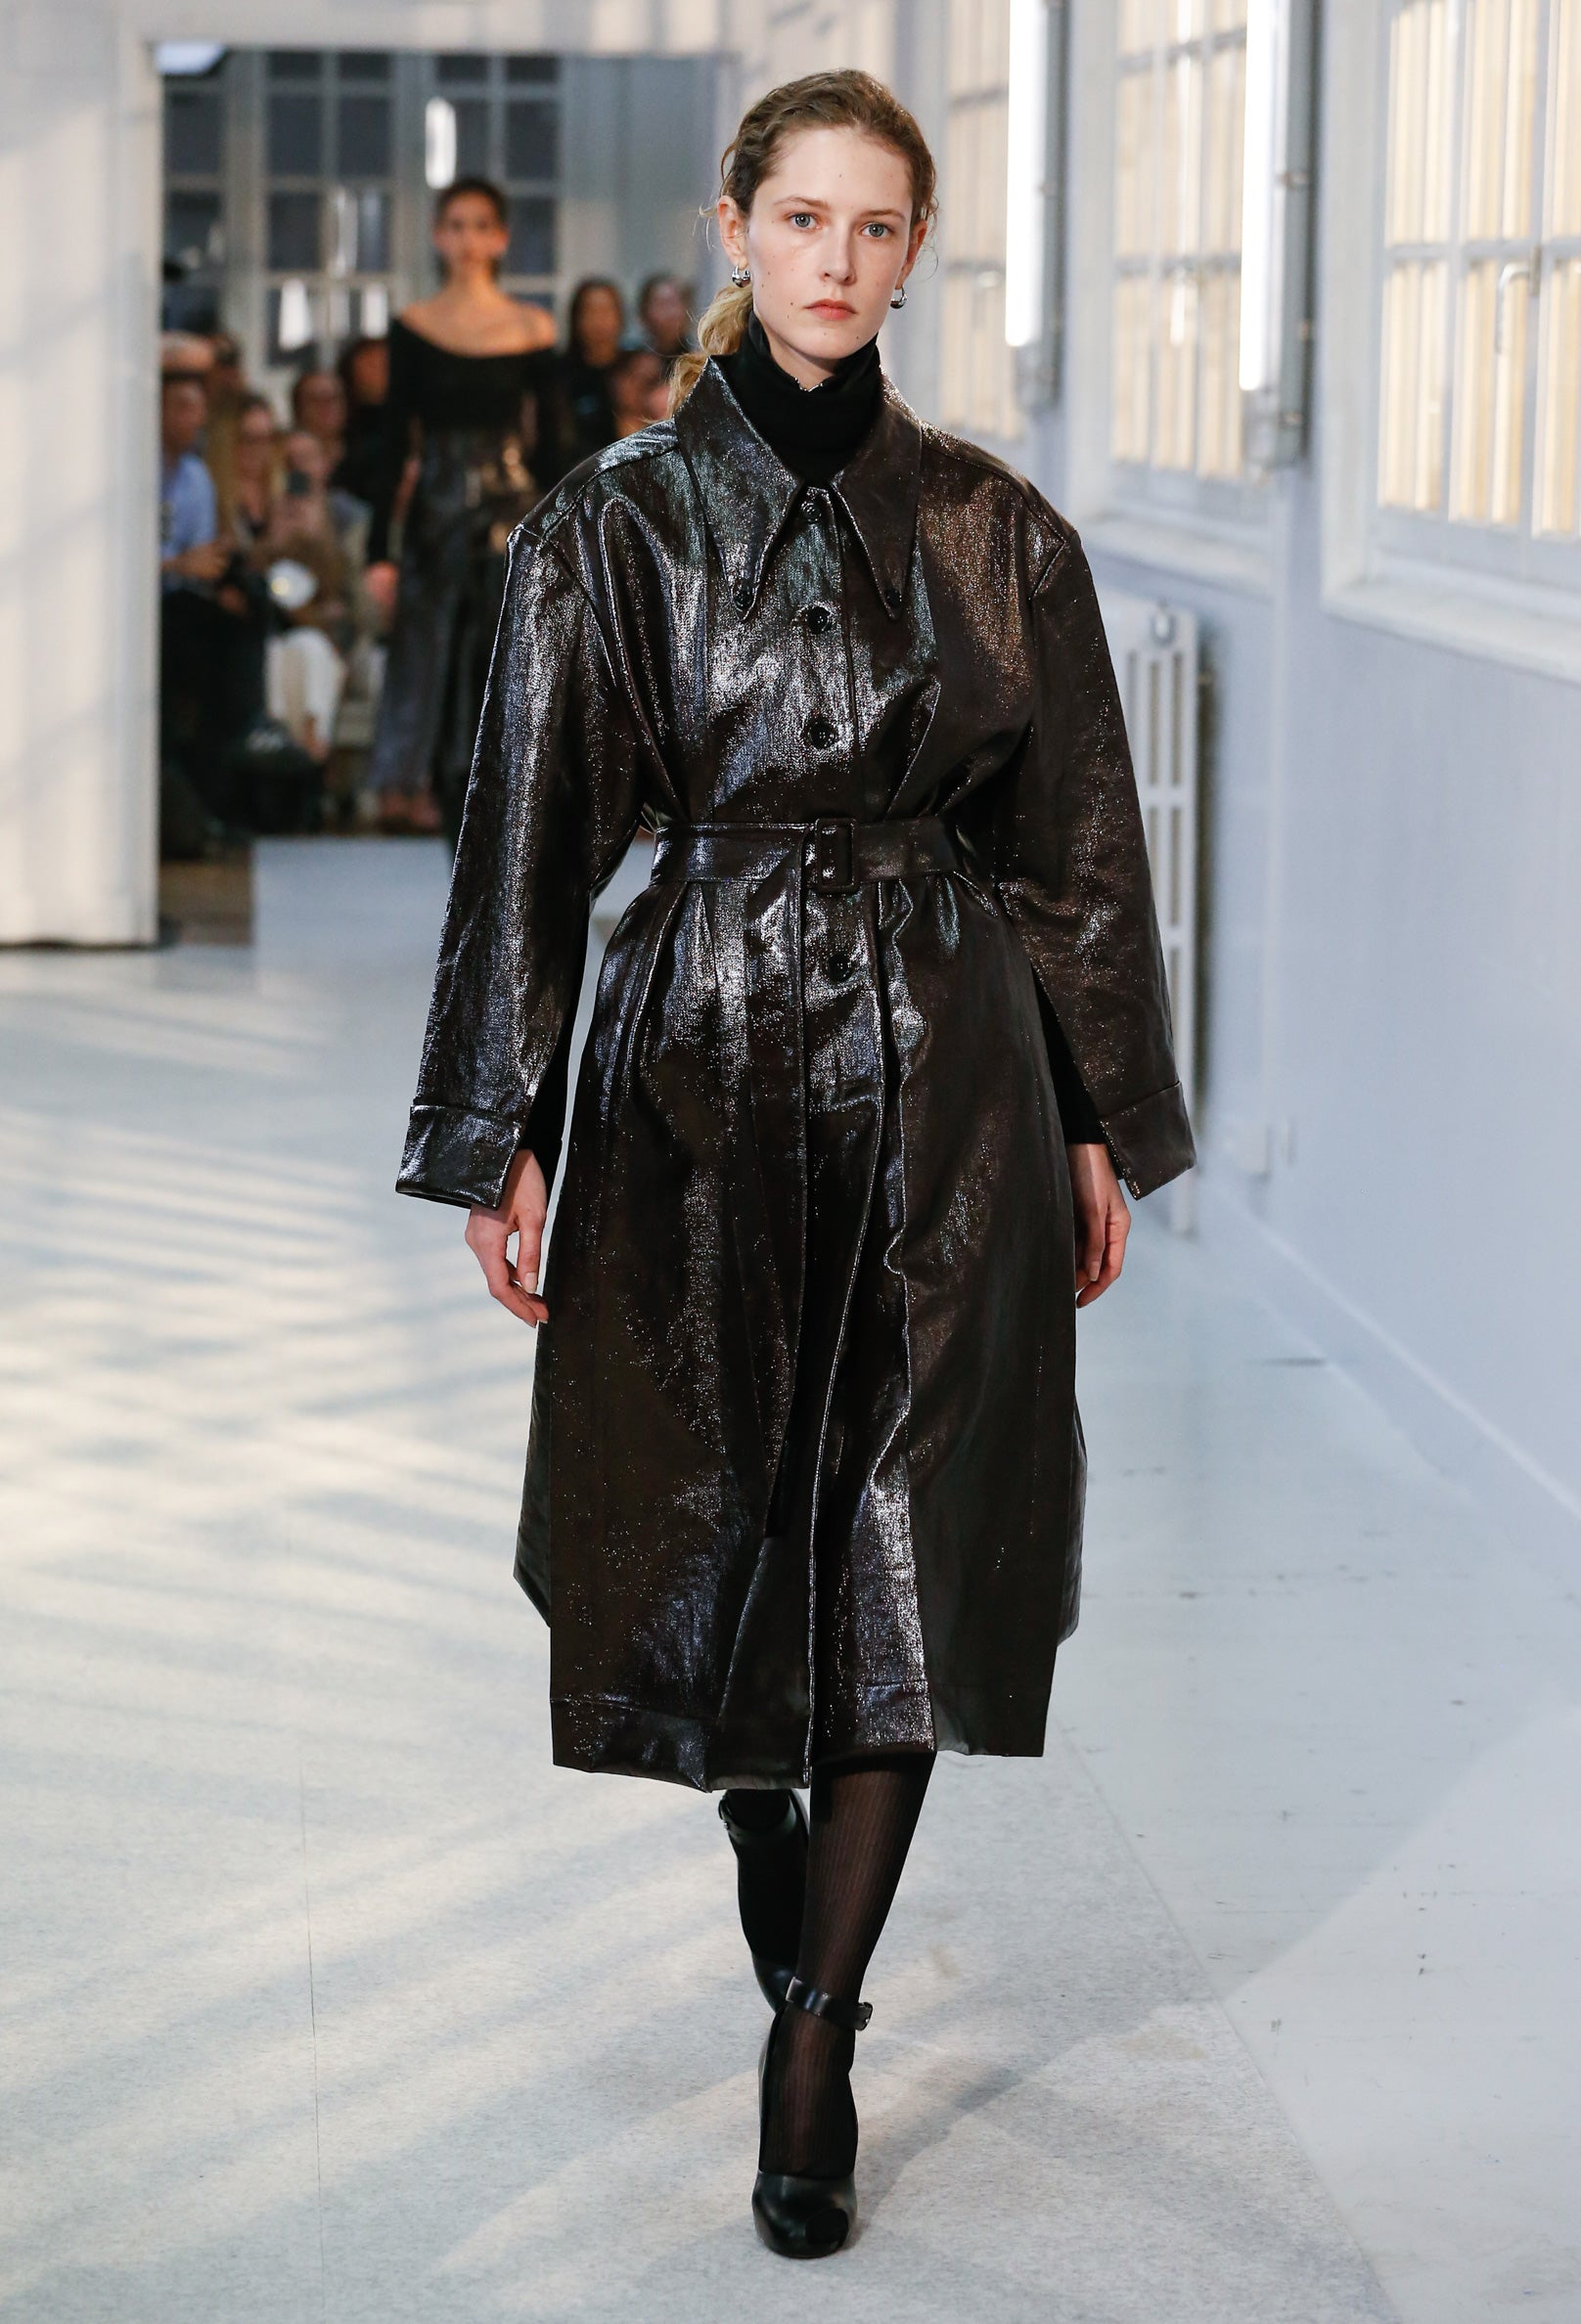 Maria wearing the long shirt coat at the Fall-Winter 2019 show